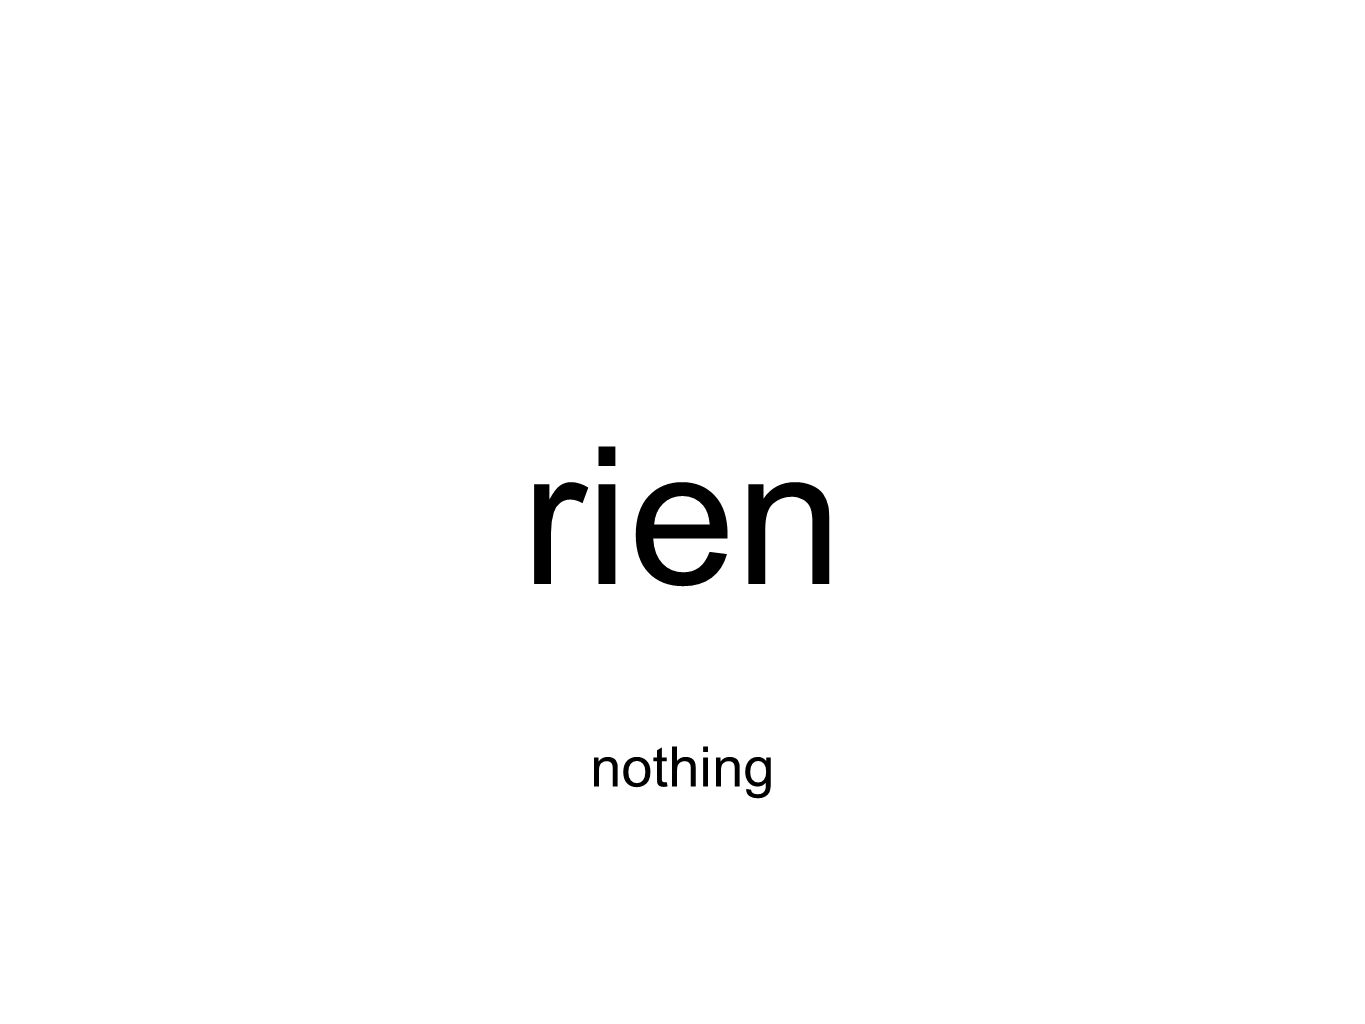 rien nothing